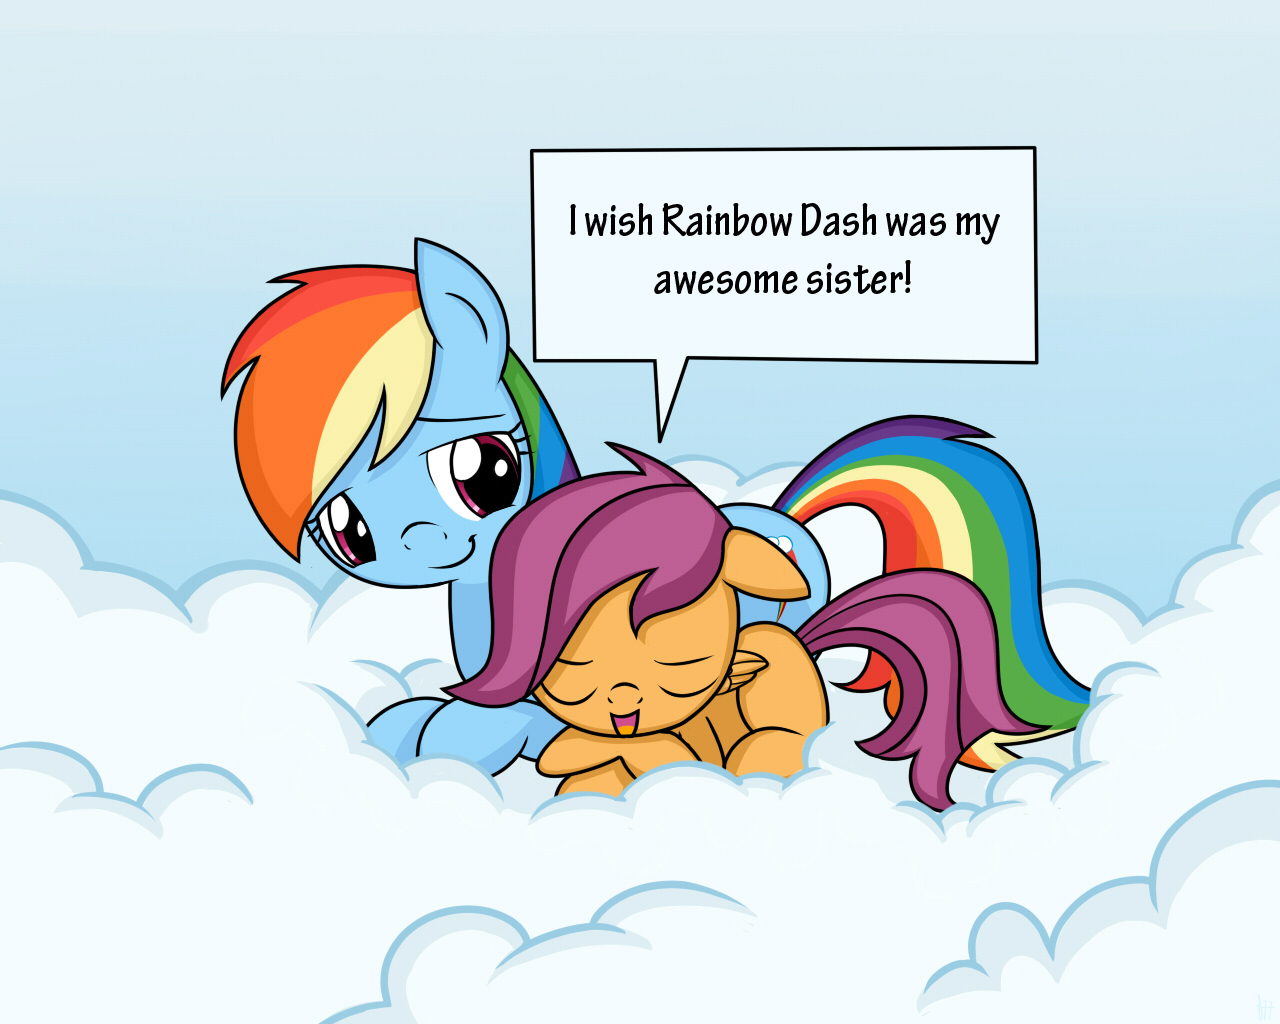 Request Rainbow Dash And Scootaloo By Frank Seven On Deviantart It soon turns out that the filly got into an argument with her aunts, and it's up rainbow dash and twilight decide to visit filthy rich and spoiled to stop the bullying towards scootaloo. request rainbow dash and scootaloo by